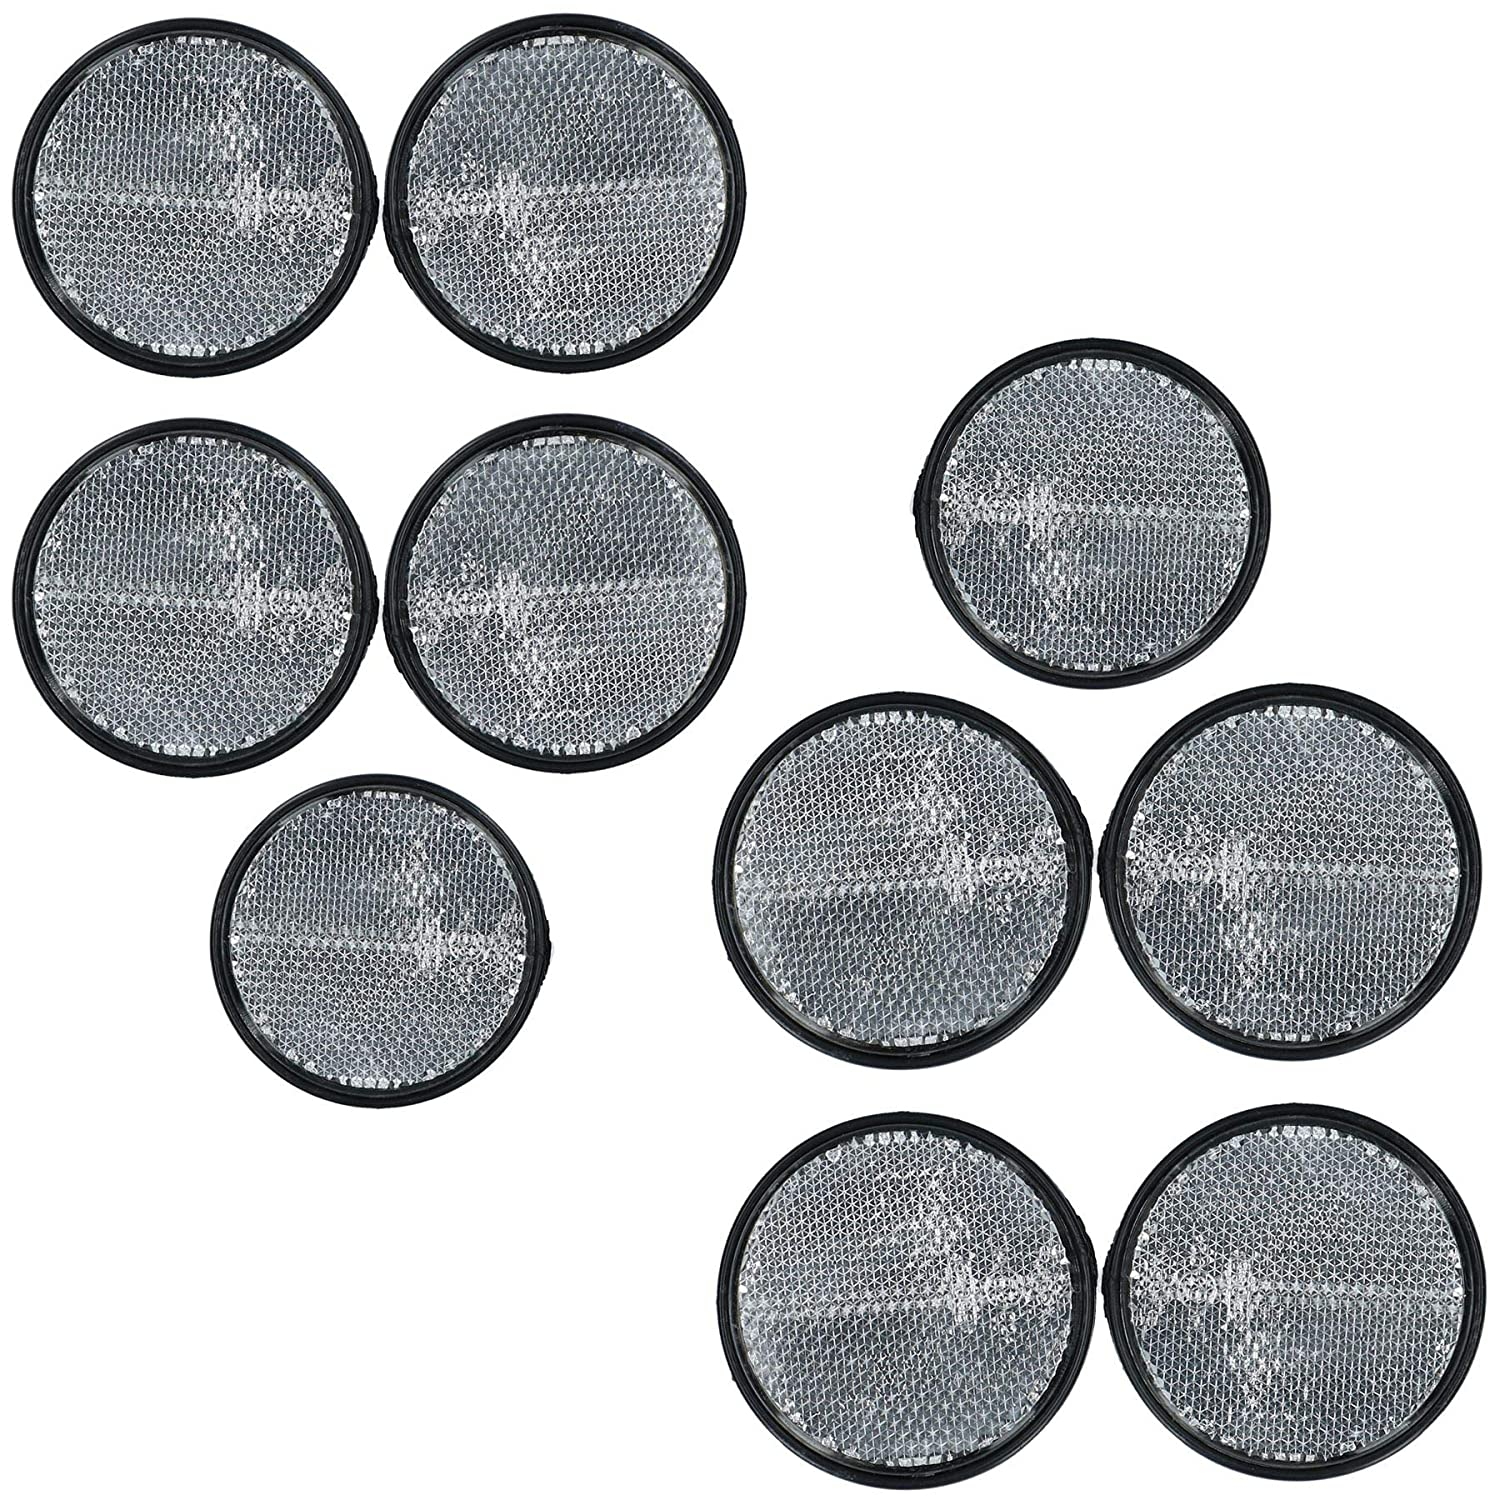 White Clear Retro Reflector Trailer Fence Post with Self-Adhesive Back 10 Pack AB Tools